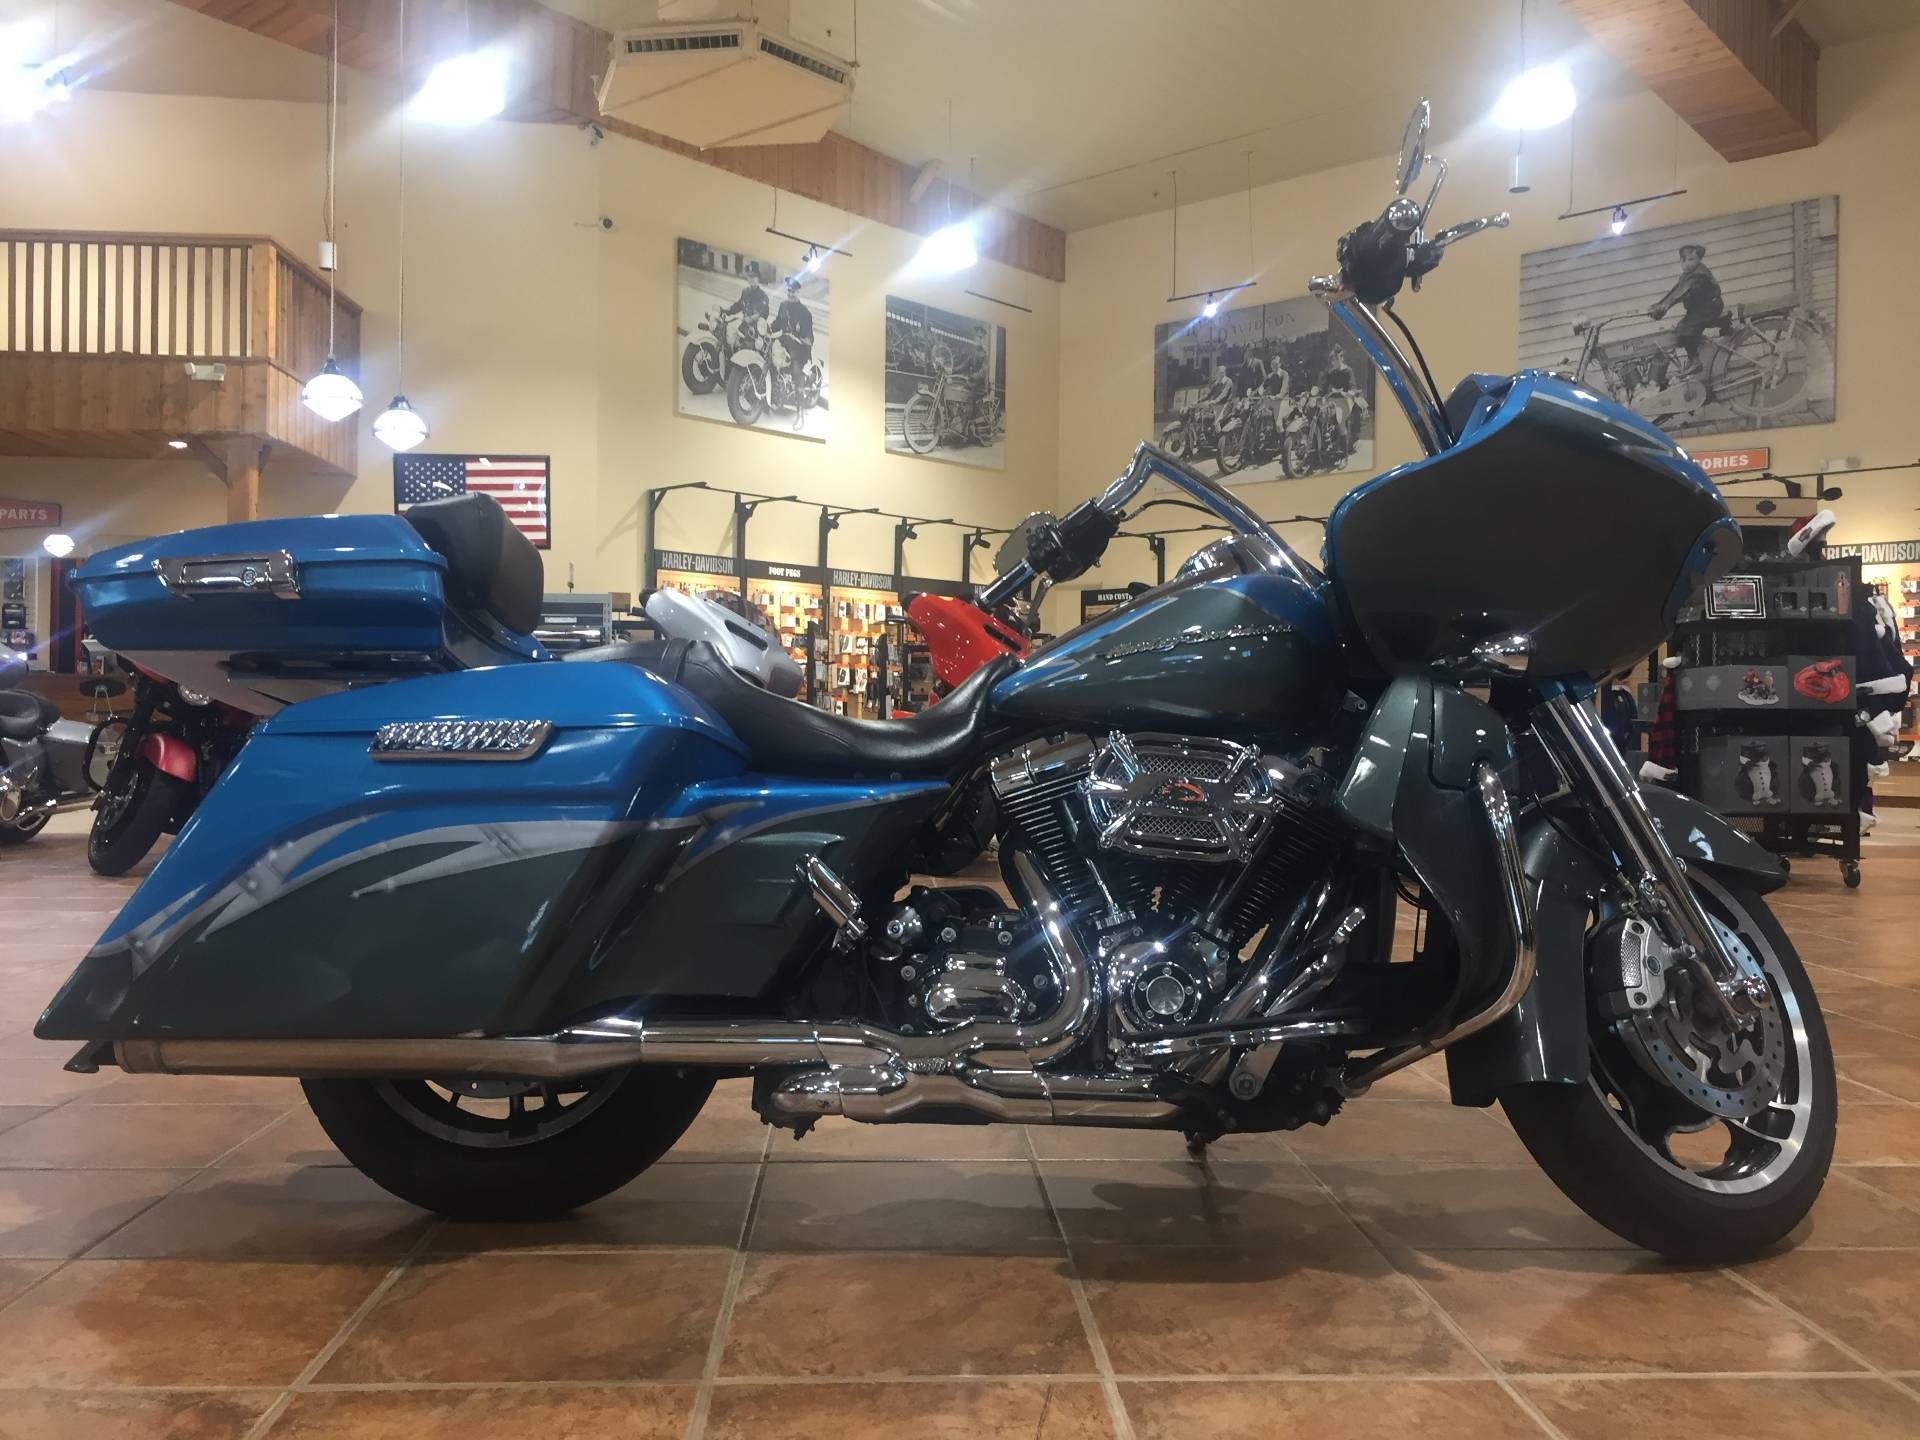 2015 Harley-Davidson ROAD GLIDE SPECIAL in Houston, Texas